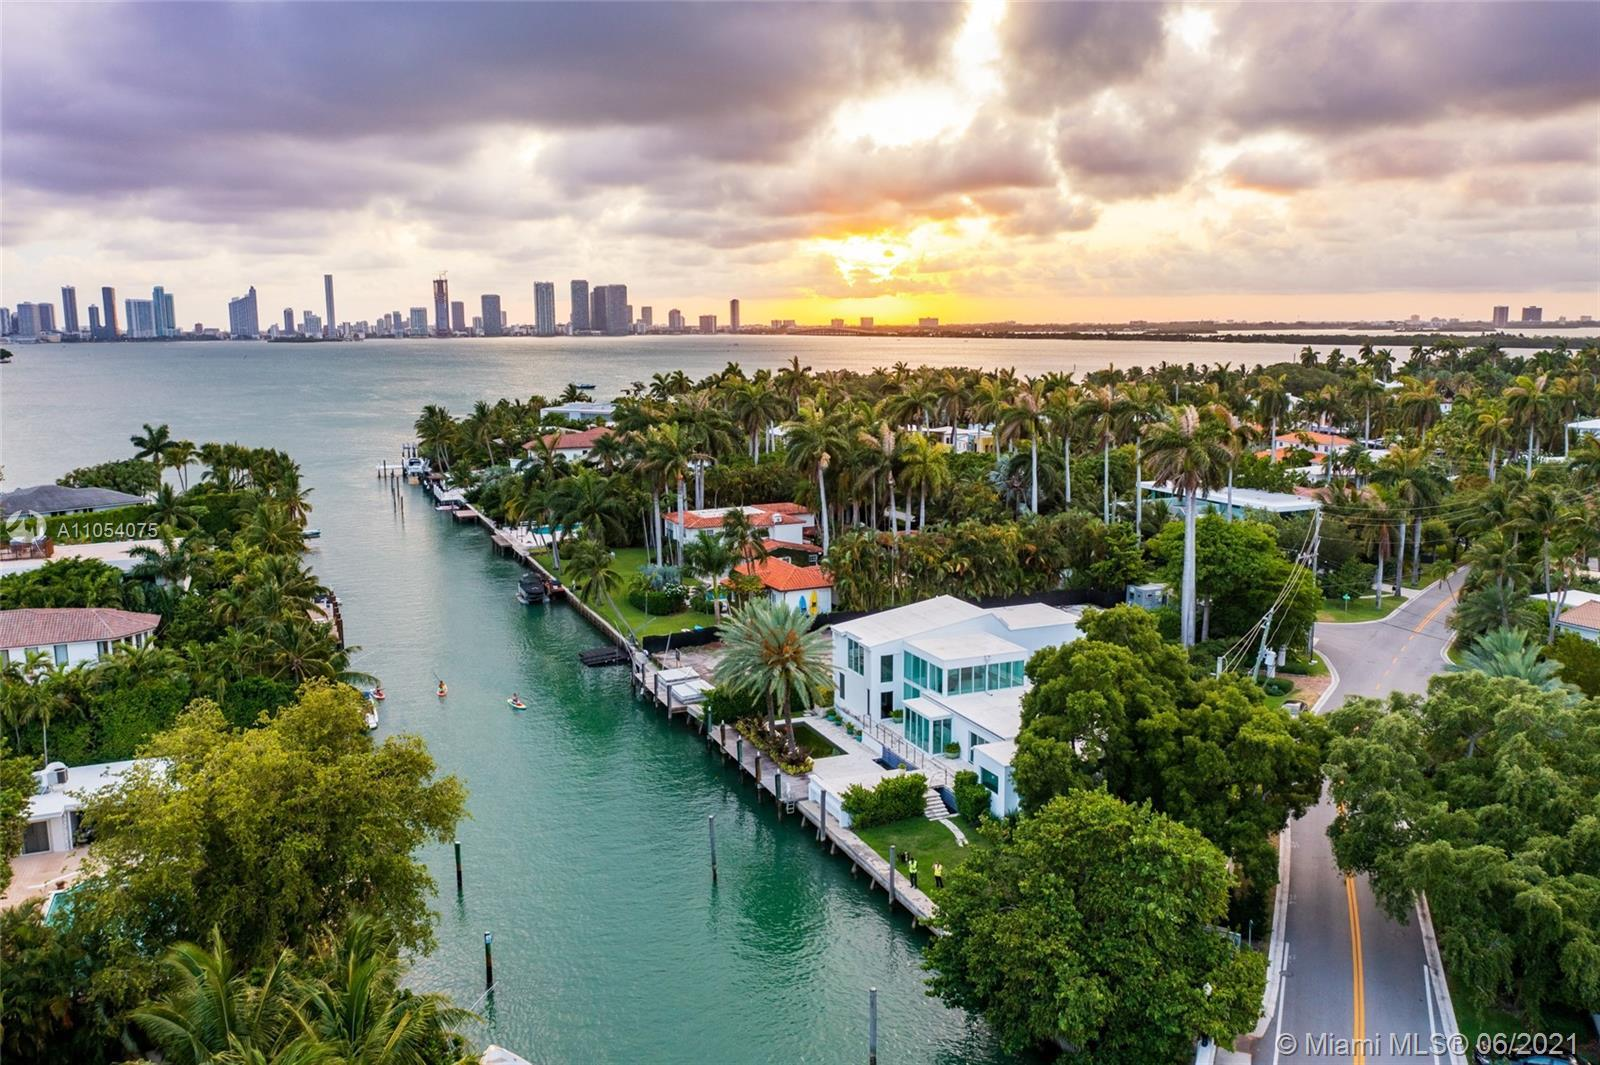 170 ft of private waterfront w/ direct access to open Biscayne Bay. Oversized 14,875 Ft lot rarely a